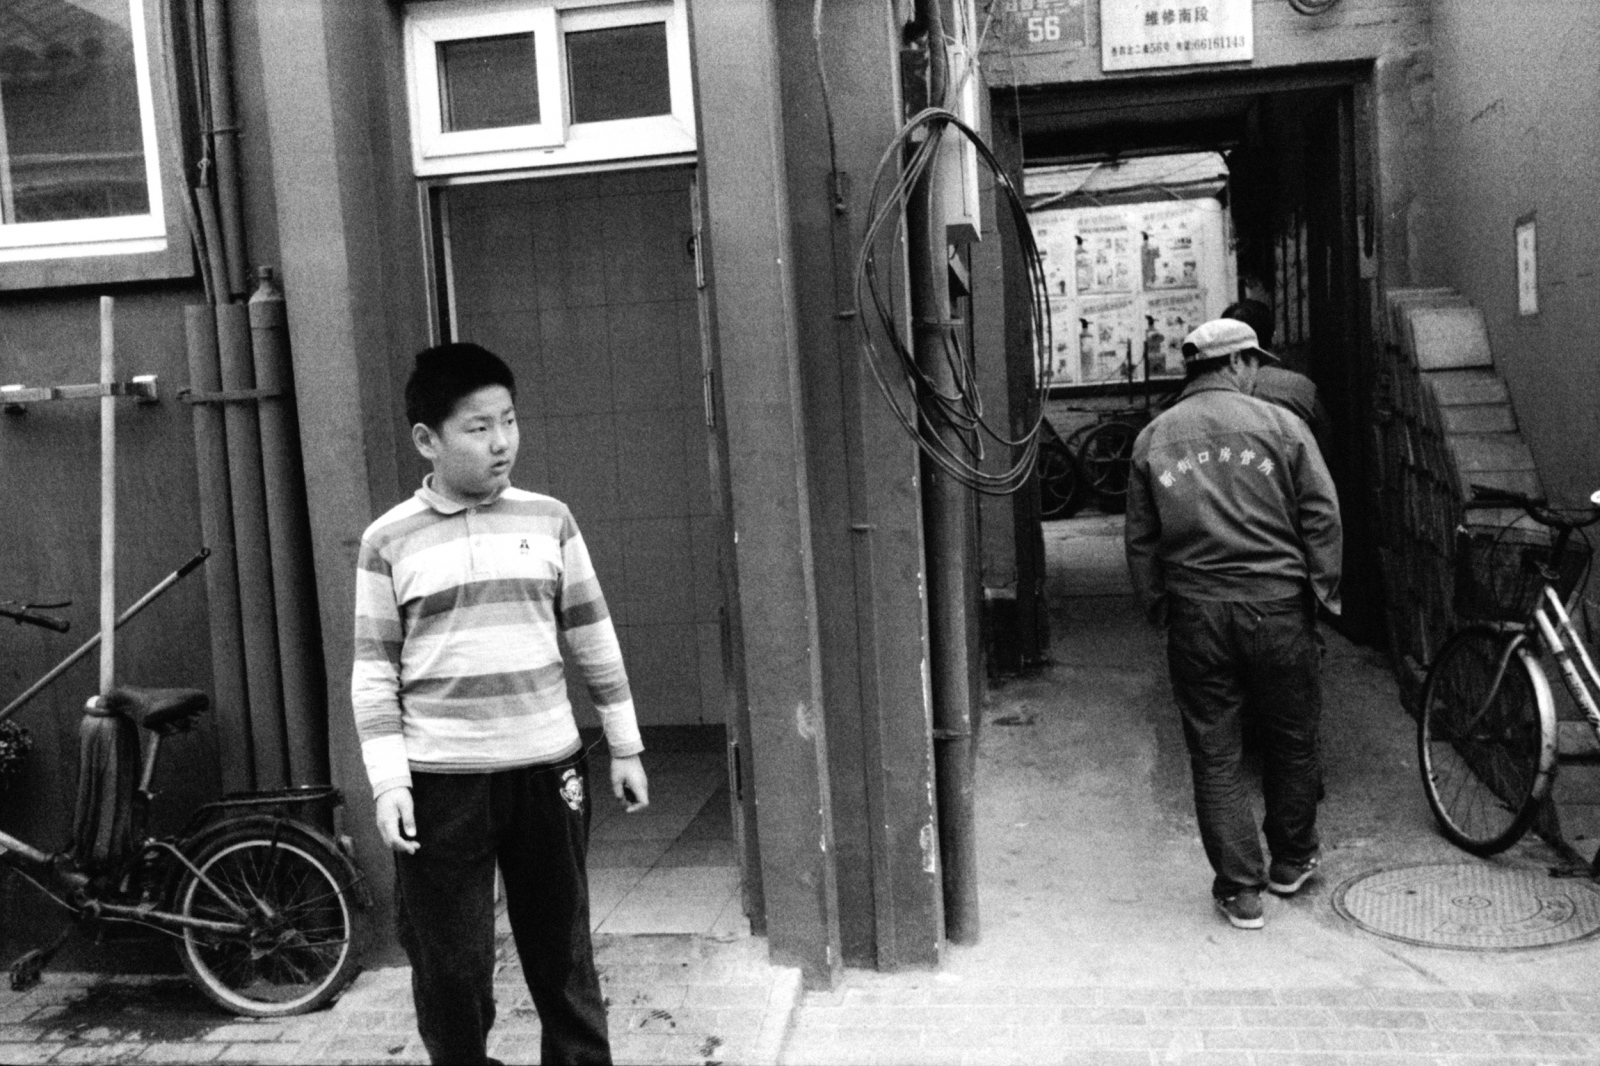 A boy stands in front of a public toilet.  Beijing, China. 2015